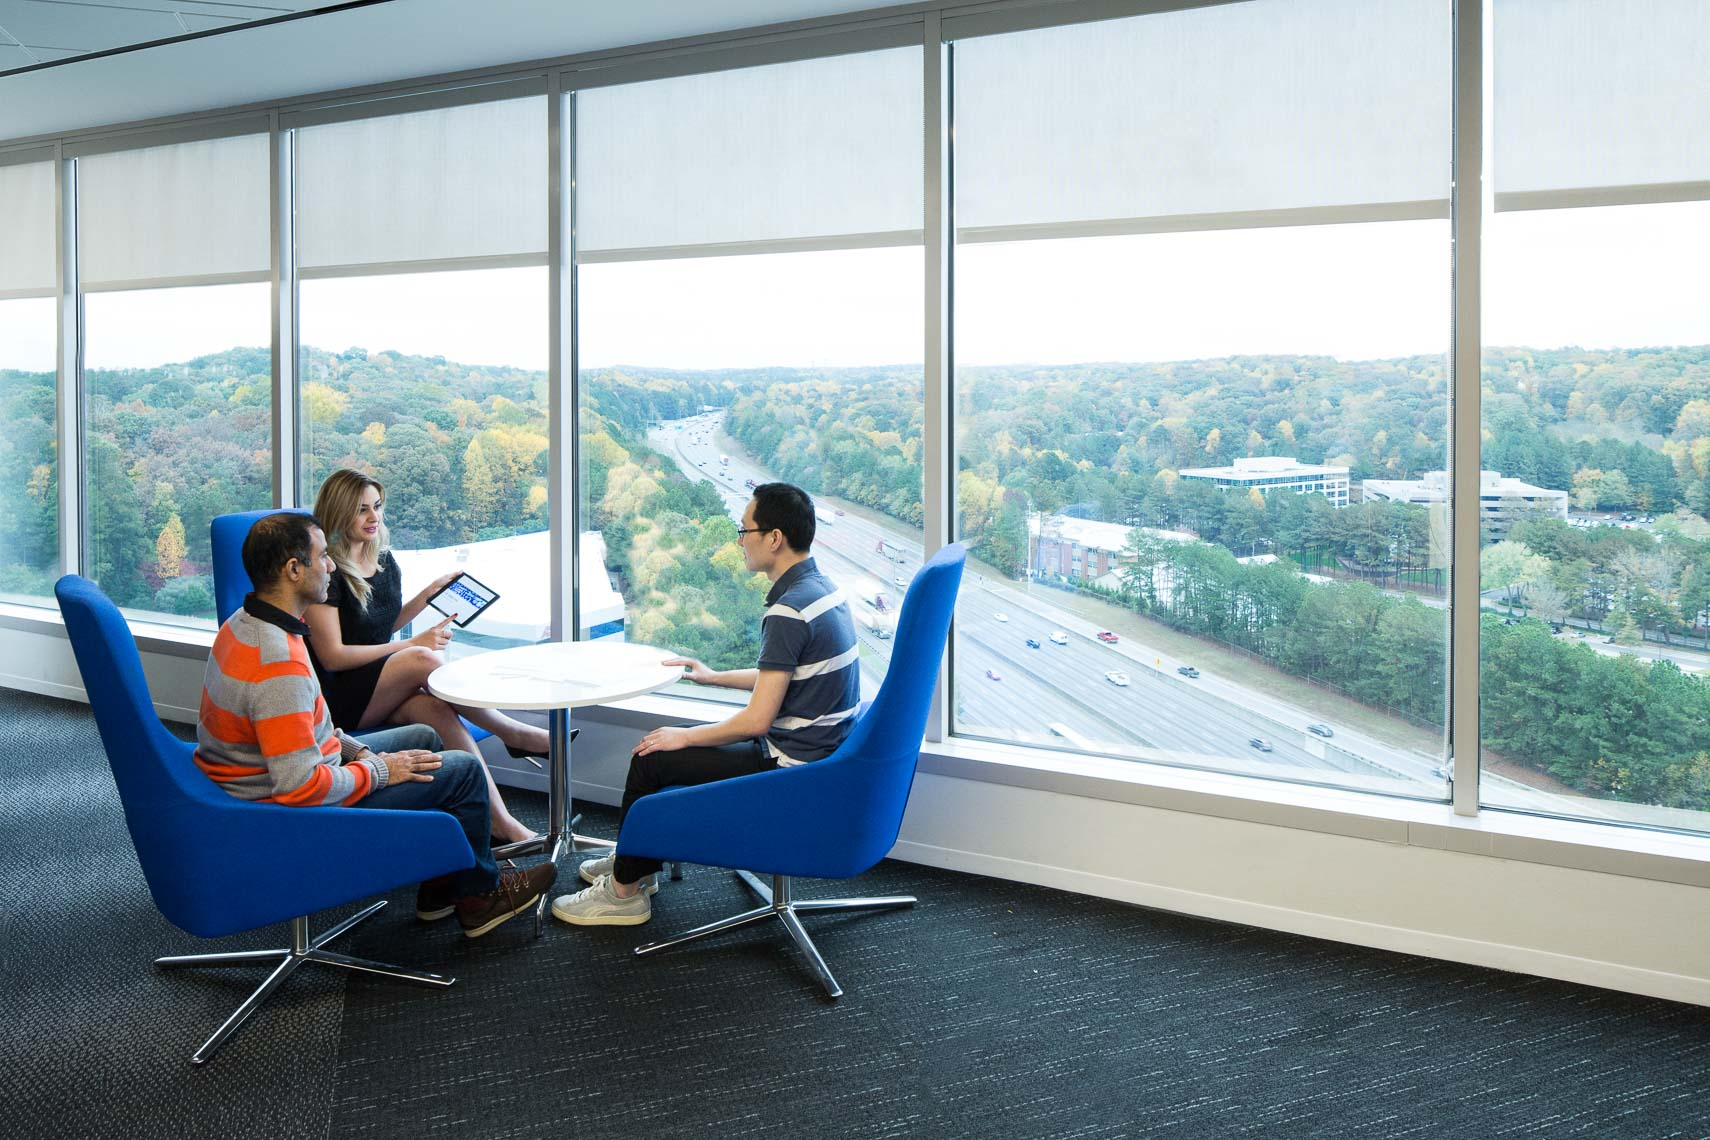 Office employees in a glass walled office overlooking an urban landscape